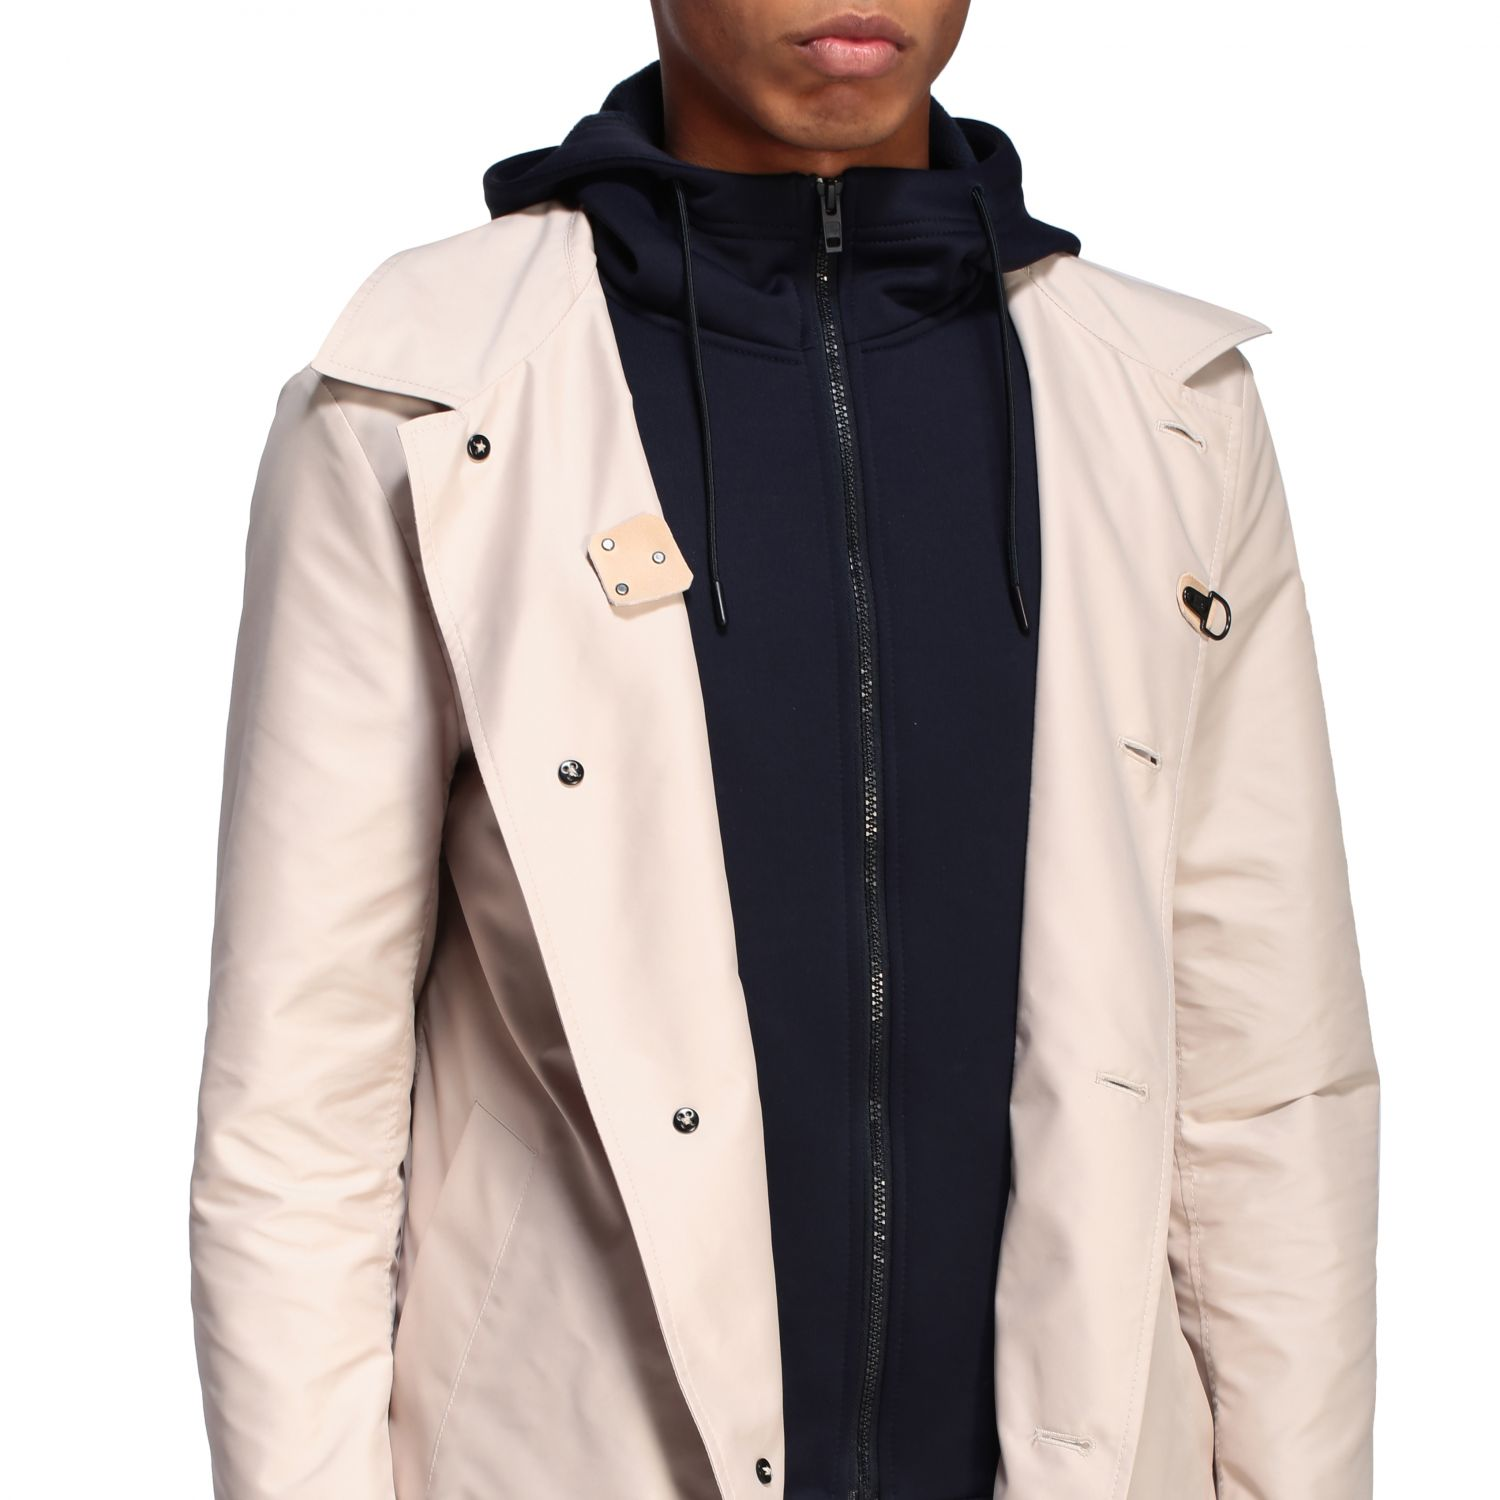 Trench Fay: Trench-coat droit à capuche Fay crème 4